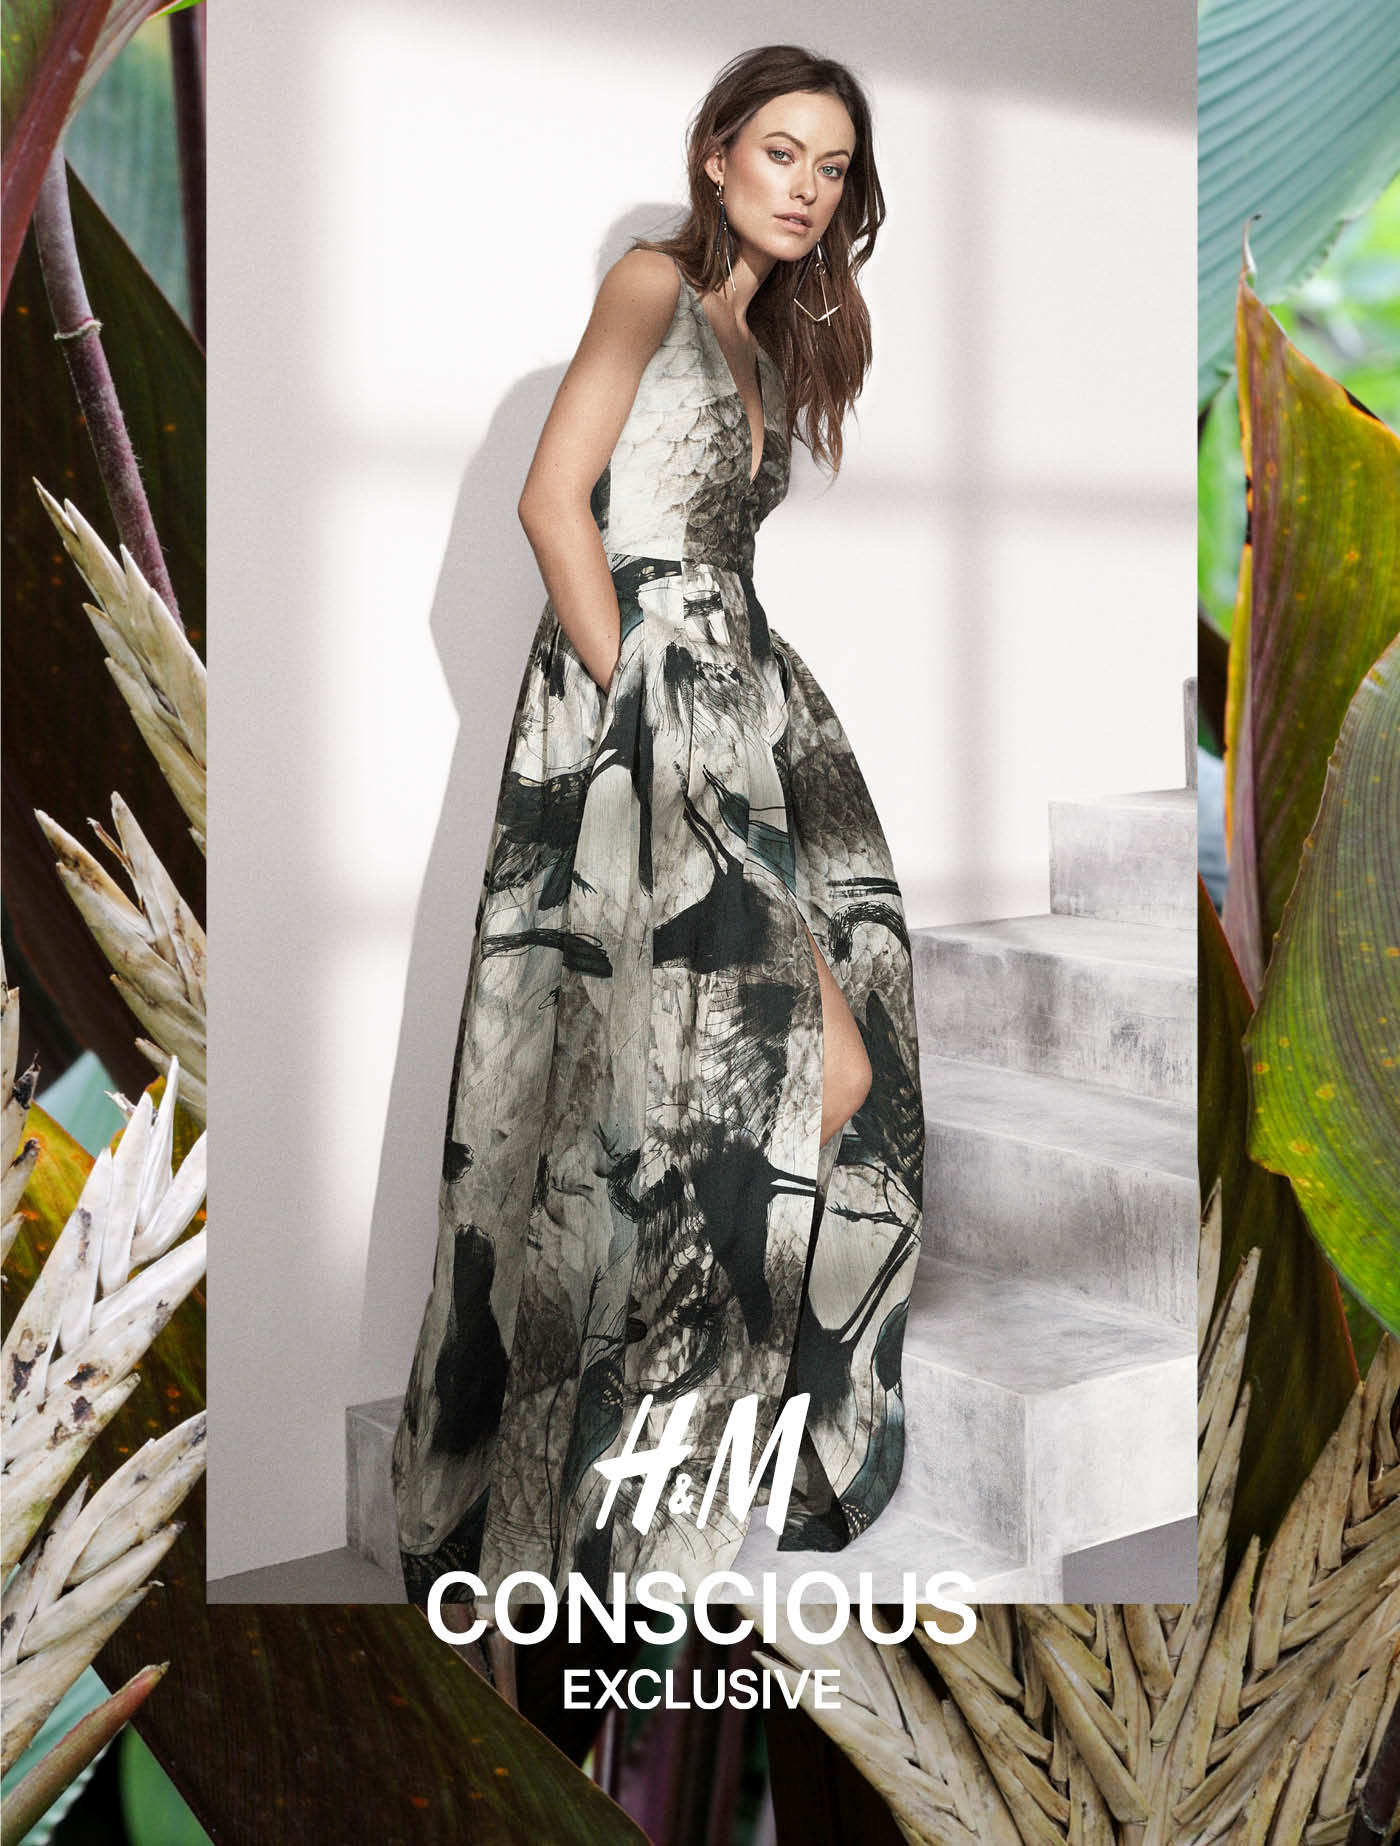 Olivia Wilde For HampM Conscious Exclusive High Street